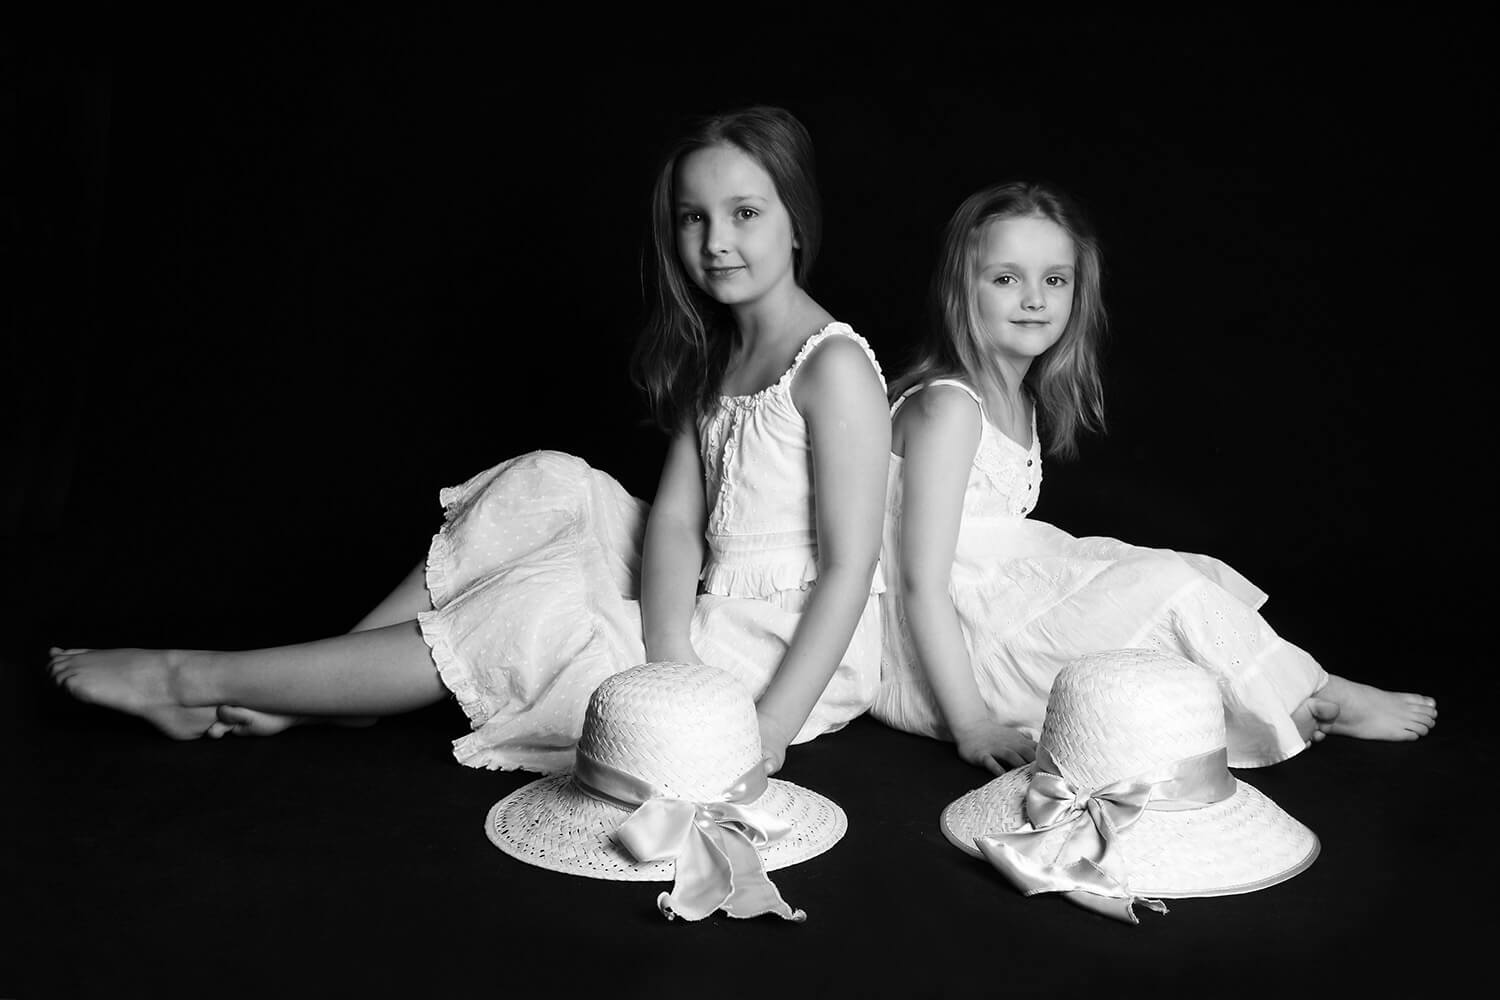 black and white family photo of two sisters in white dresses and with hats on a dark background